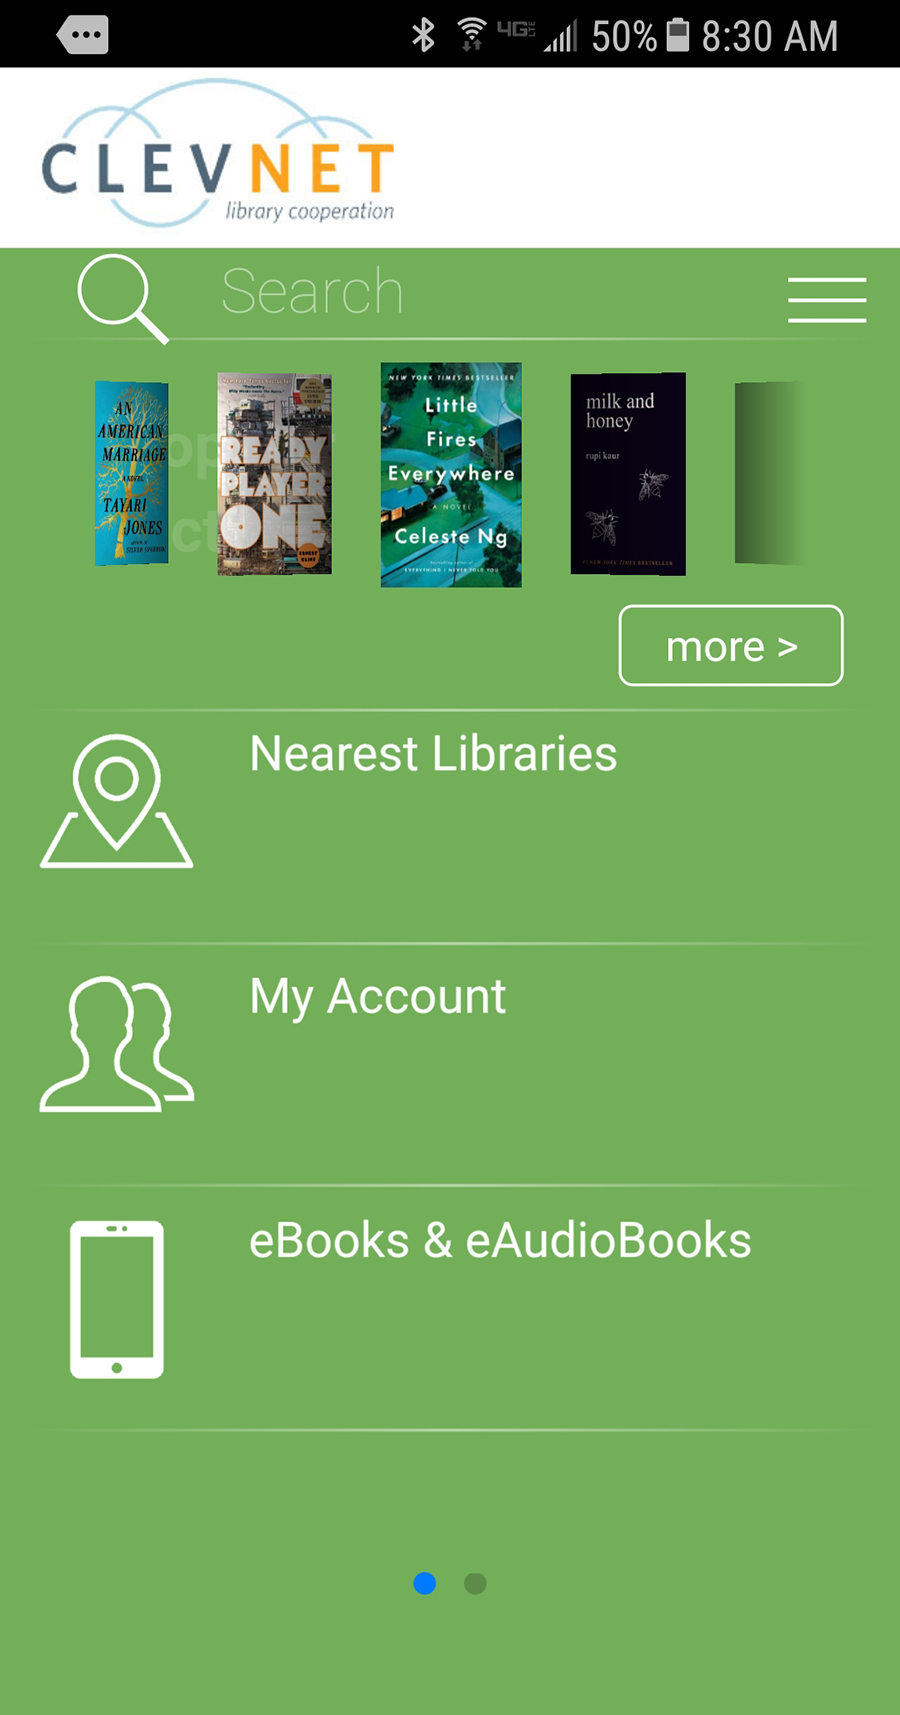 Screen shot of CLEVNET app main screen